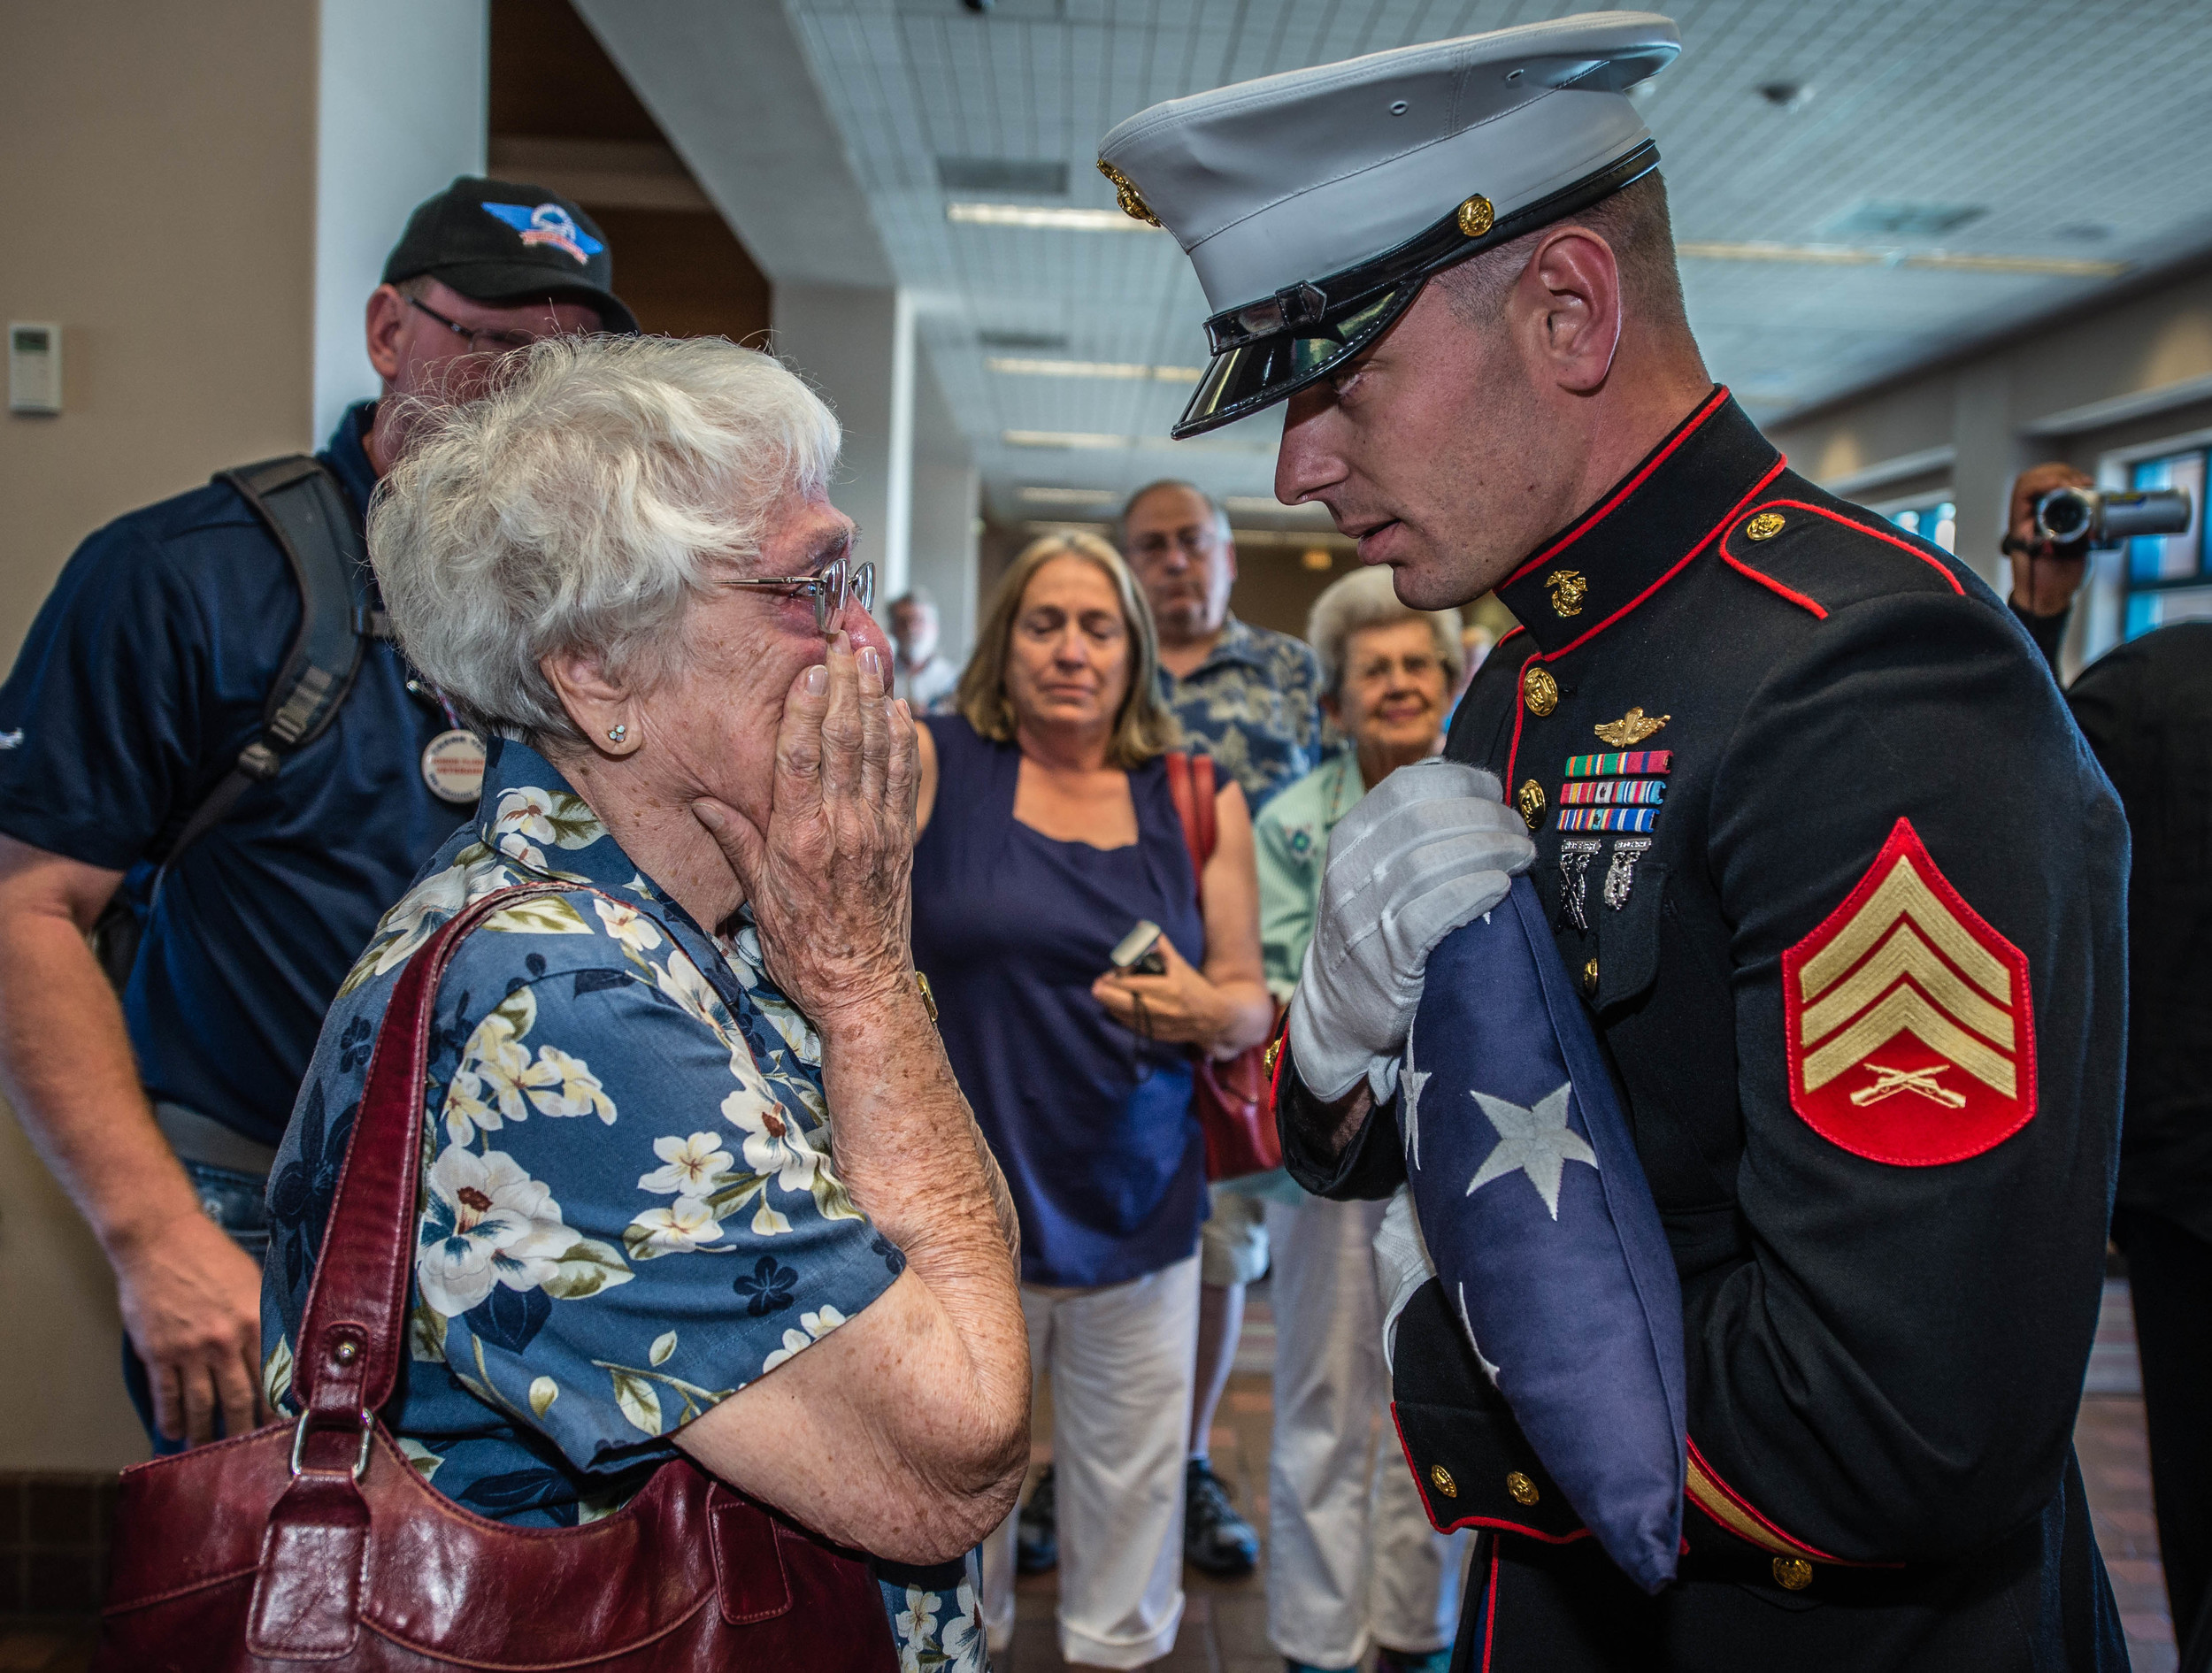 Marine Corps Sgt. Nicholas McCreary presents an American flag to Charlotte Clark of Albuquerque on Friday at the conclusion of an Honor Flight, during which 22 New Mexico World War II veterans returned from an all-expense-paid trip to visit the National World War II Memorial in Washington, D.C. Clark's husband, Arthur Clark, had signed up for the Honor Flight but passed away in April. She was also presented a framed photo of her husband in his World War II Marine uniform. (Roberto E. Rosales/Albuquerque Journal)